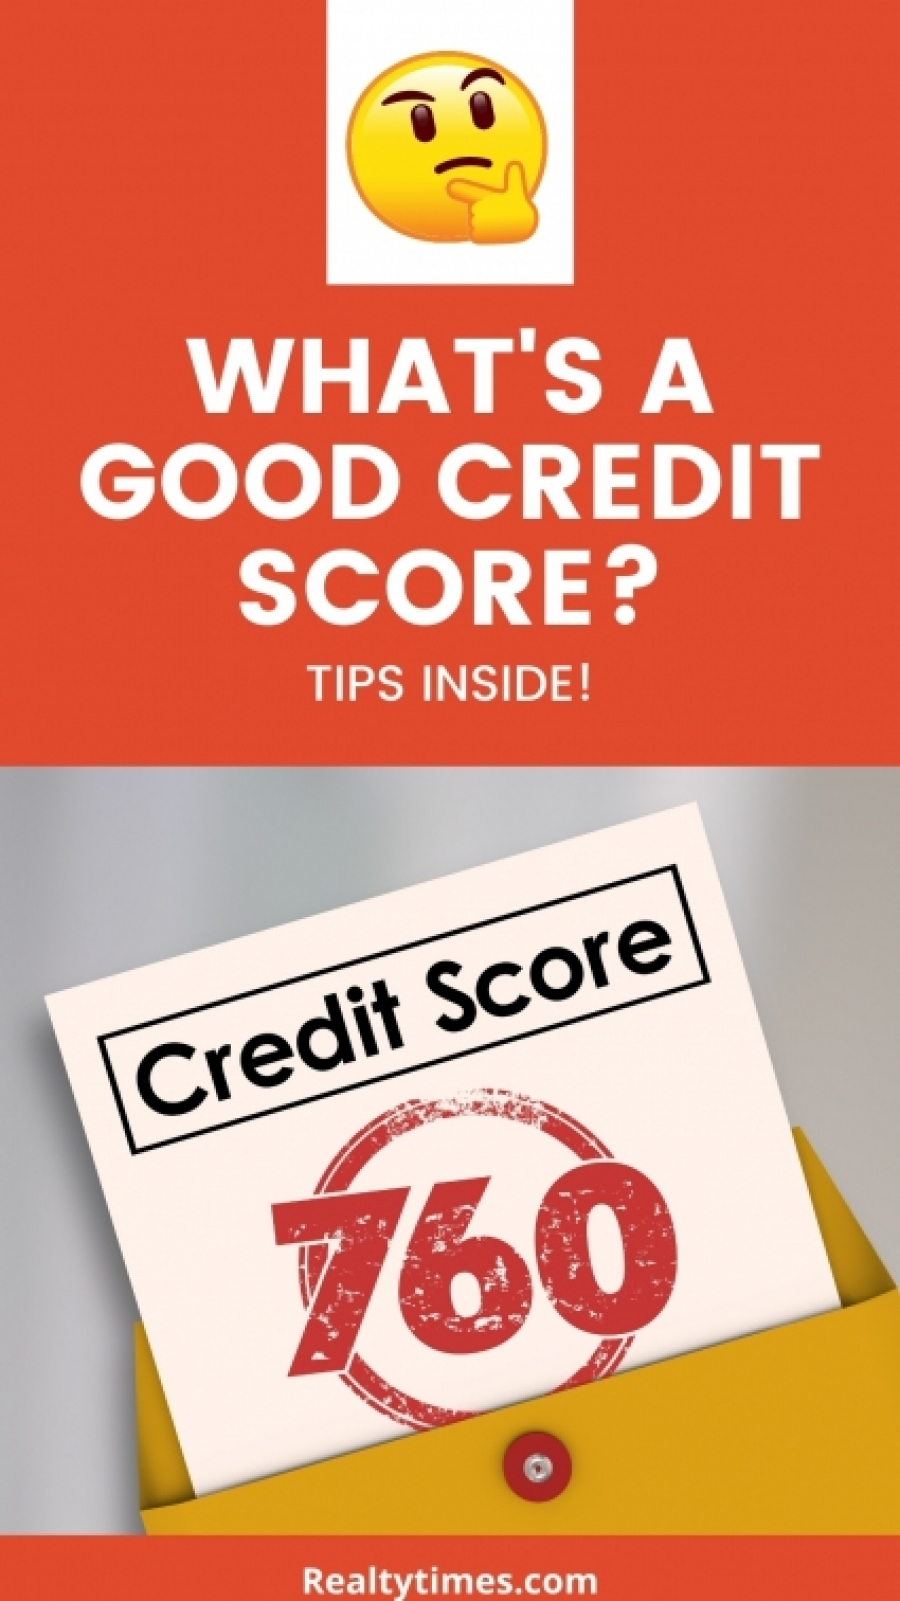 What Credit Score is Considered Good When Buying a Home